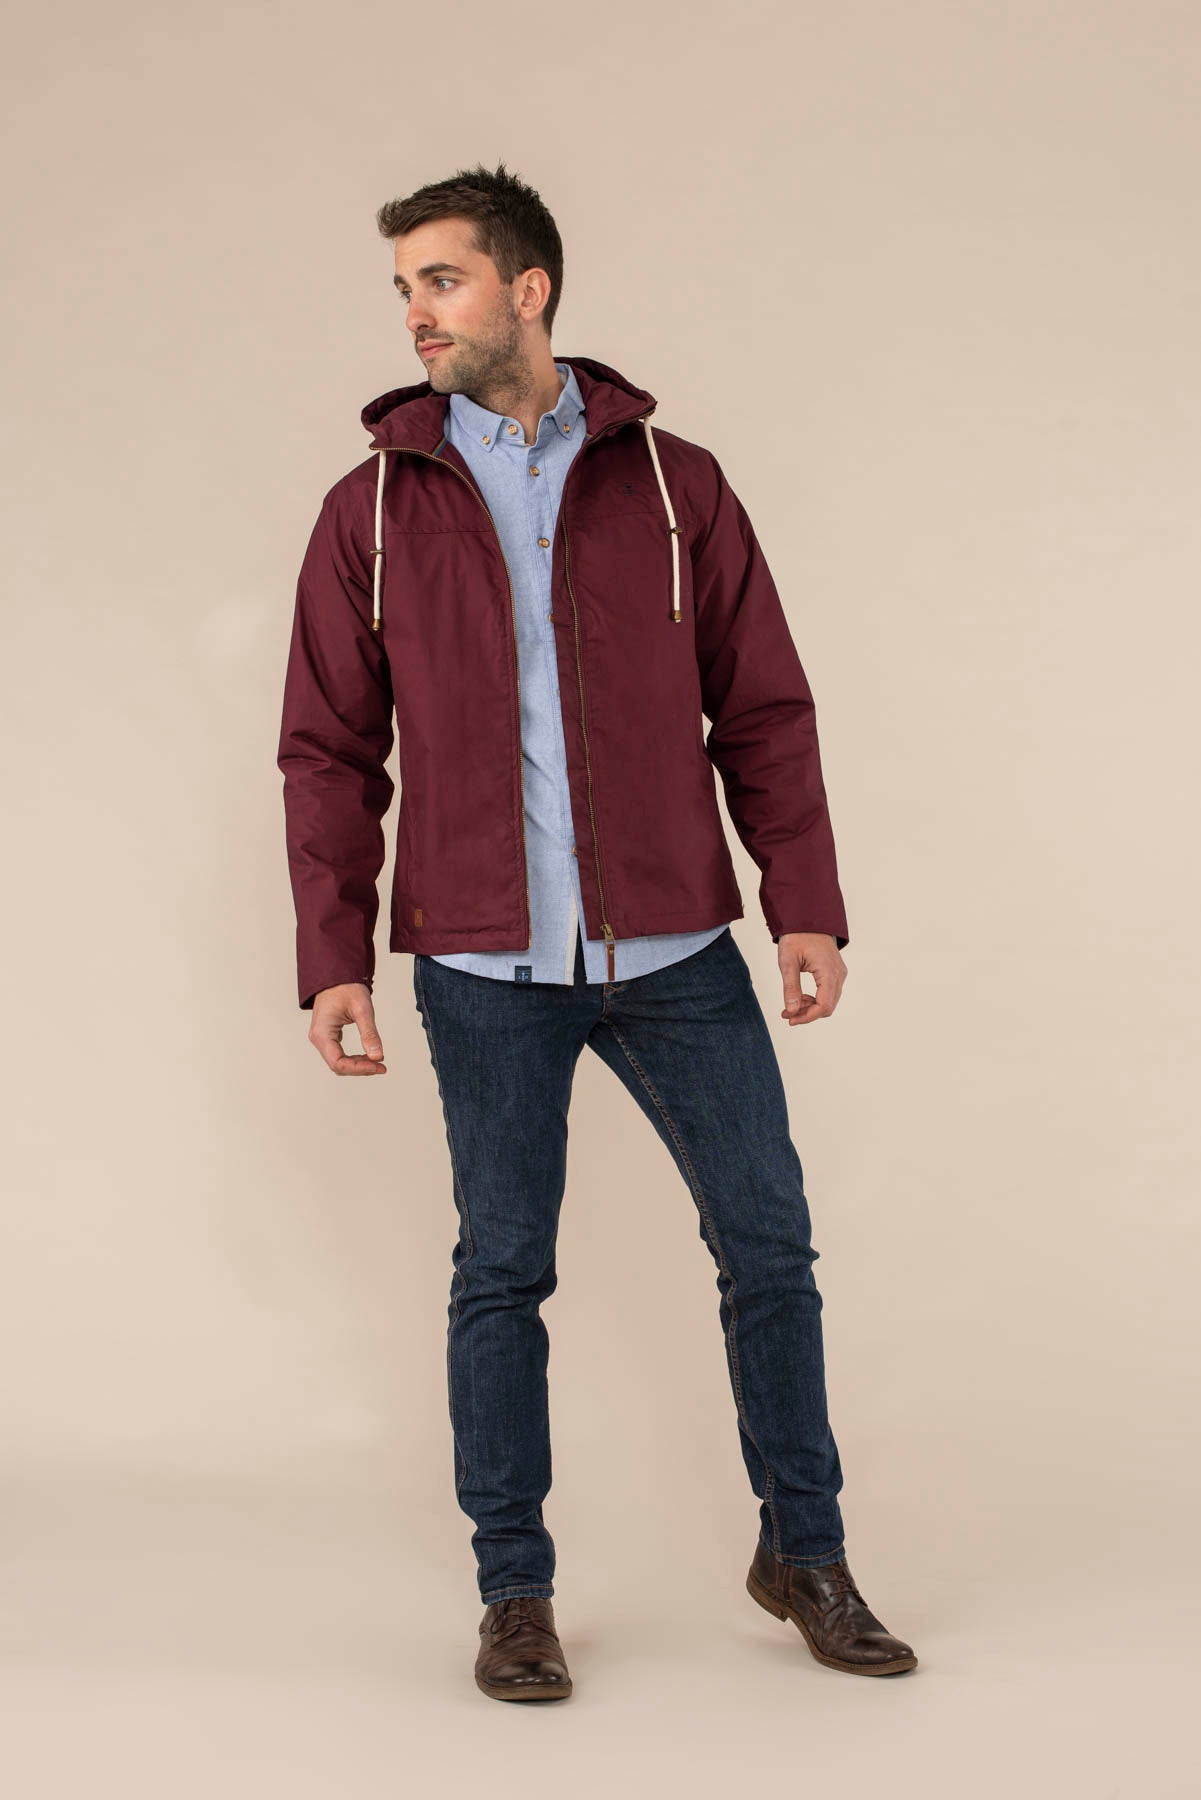 Faroe Coat. Men's Warm Raincoat in Deep Red | Lighthouse